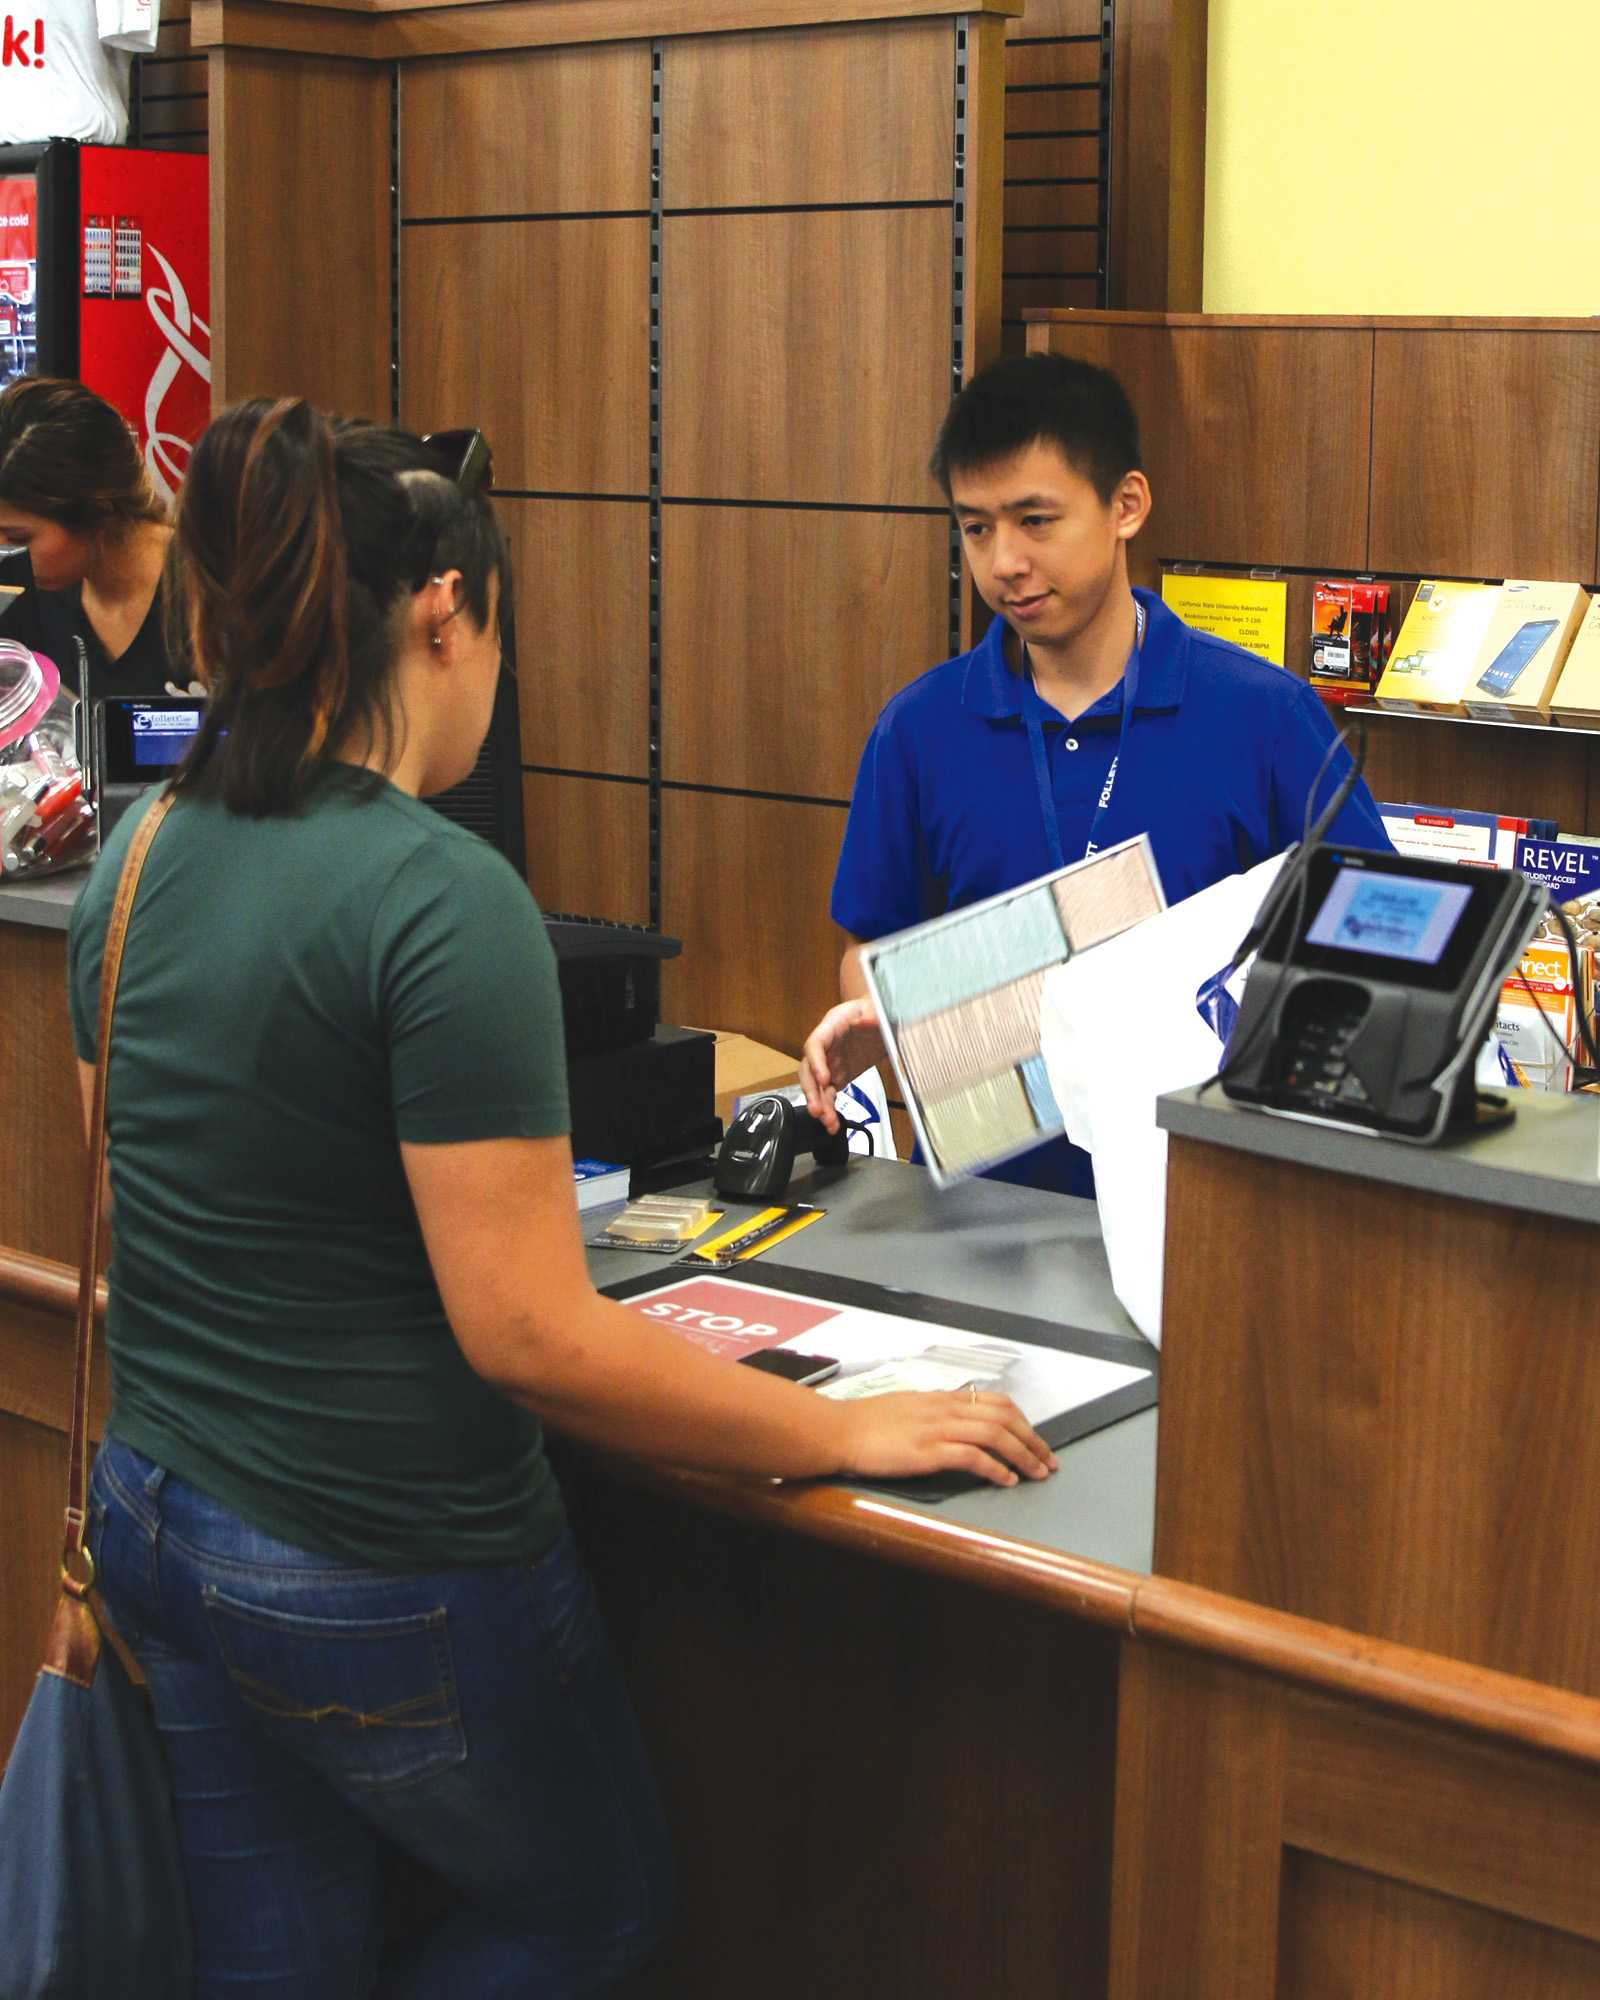 Sophomore nursing major Andrew Nguyen checks out a student at the CSU Bakersfield Bookstore on Sept. 9. The bookstore is inside the Student Union, which is one of the many building or centers that assist students. Photo by AJ Alvarado